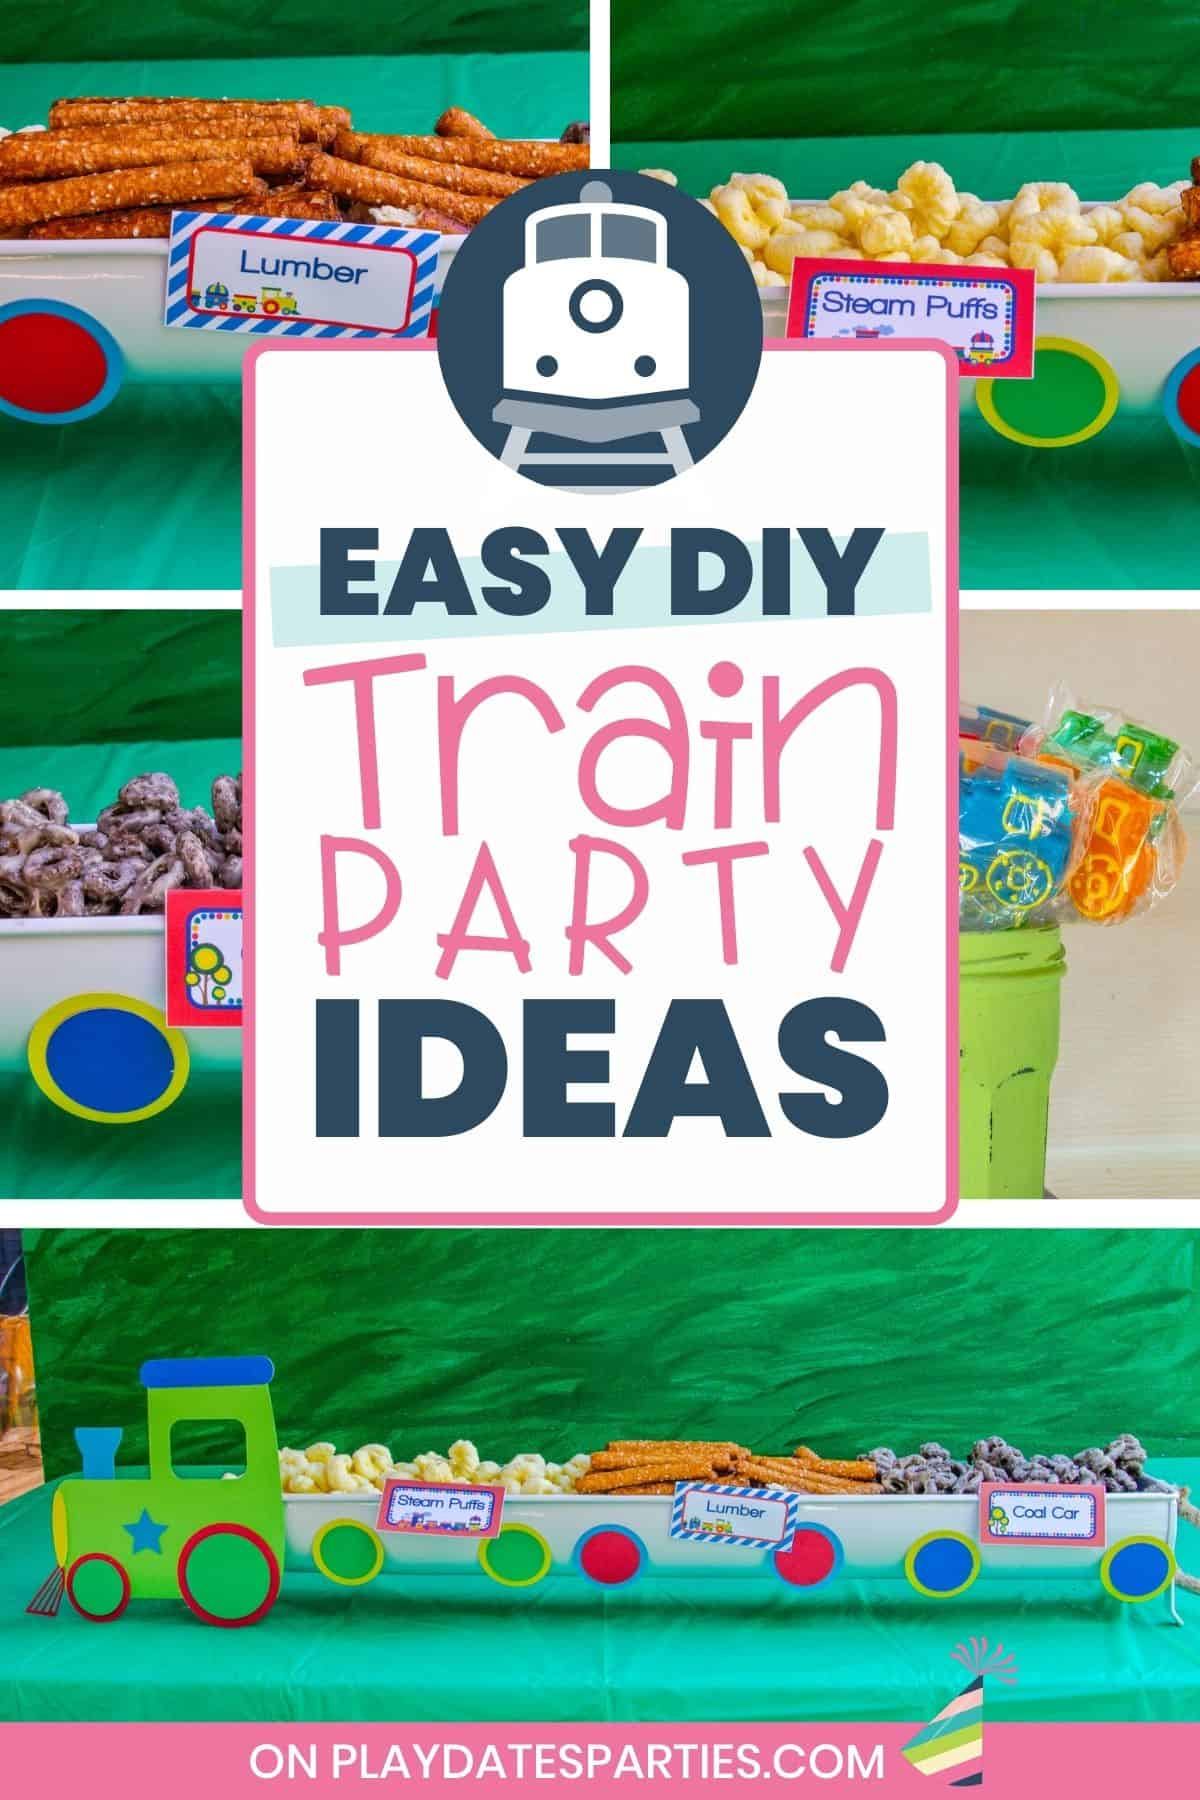 collage of train themed party food and decorations with a text overlay: Easy DIY Train Party Ideas